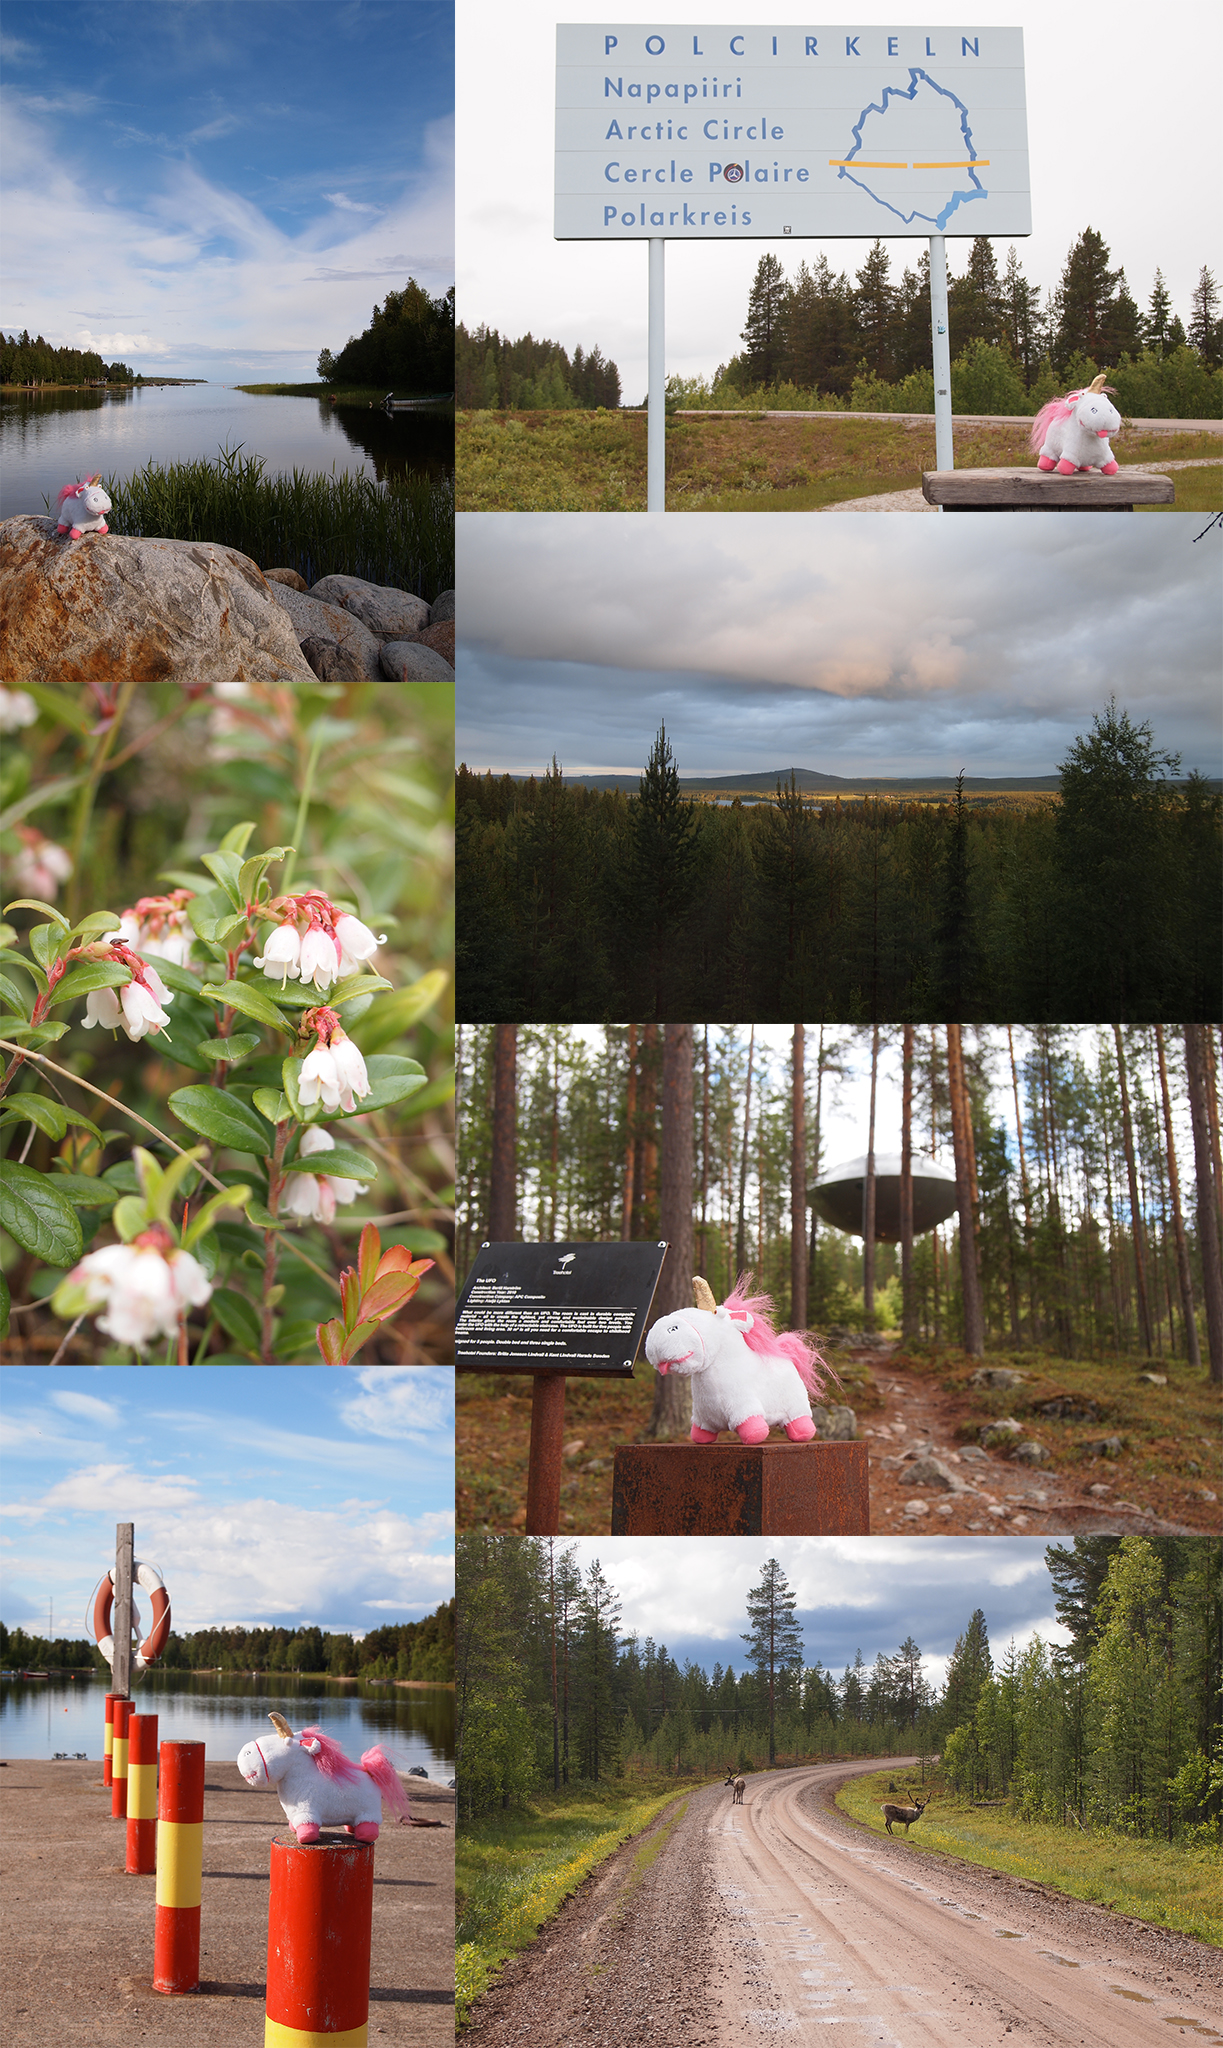 In Lapland Uni saw reindeer, lingonberry flowers, the polar circle, lots of forest ... and an UFO!